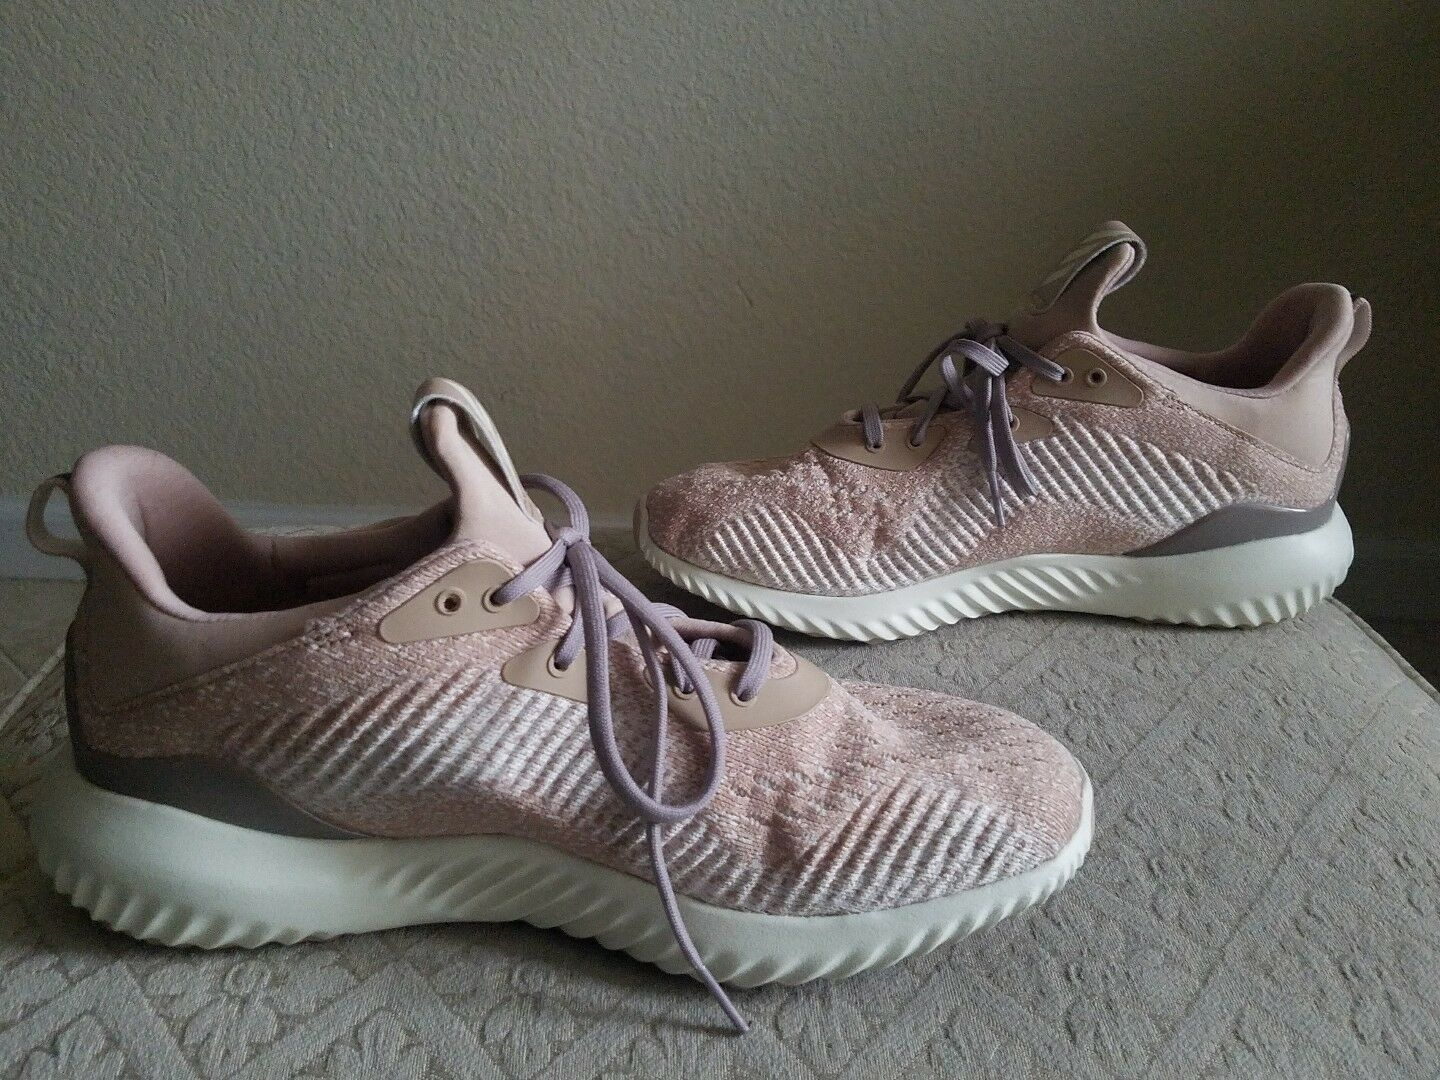 Adidas Women's Alphabounce 1 Running Shoe Sneakers Shoes Ash Pearl  8.5